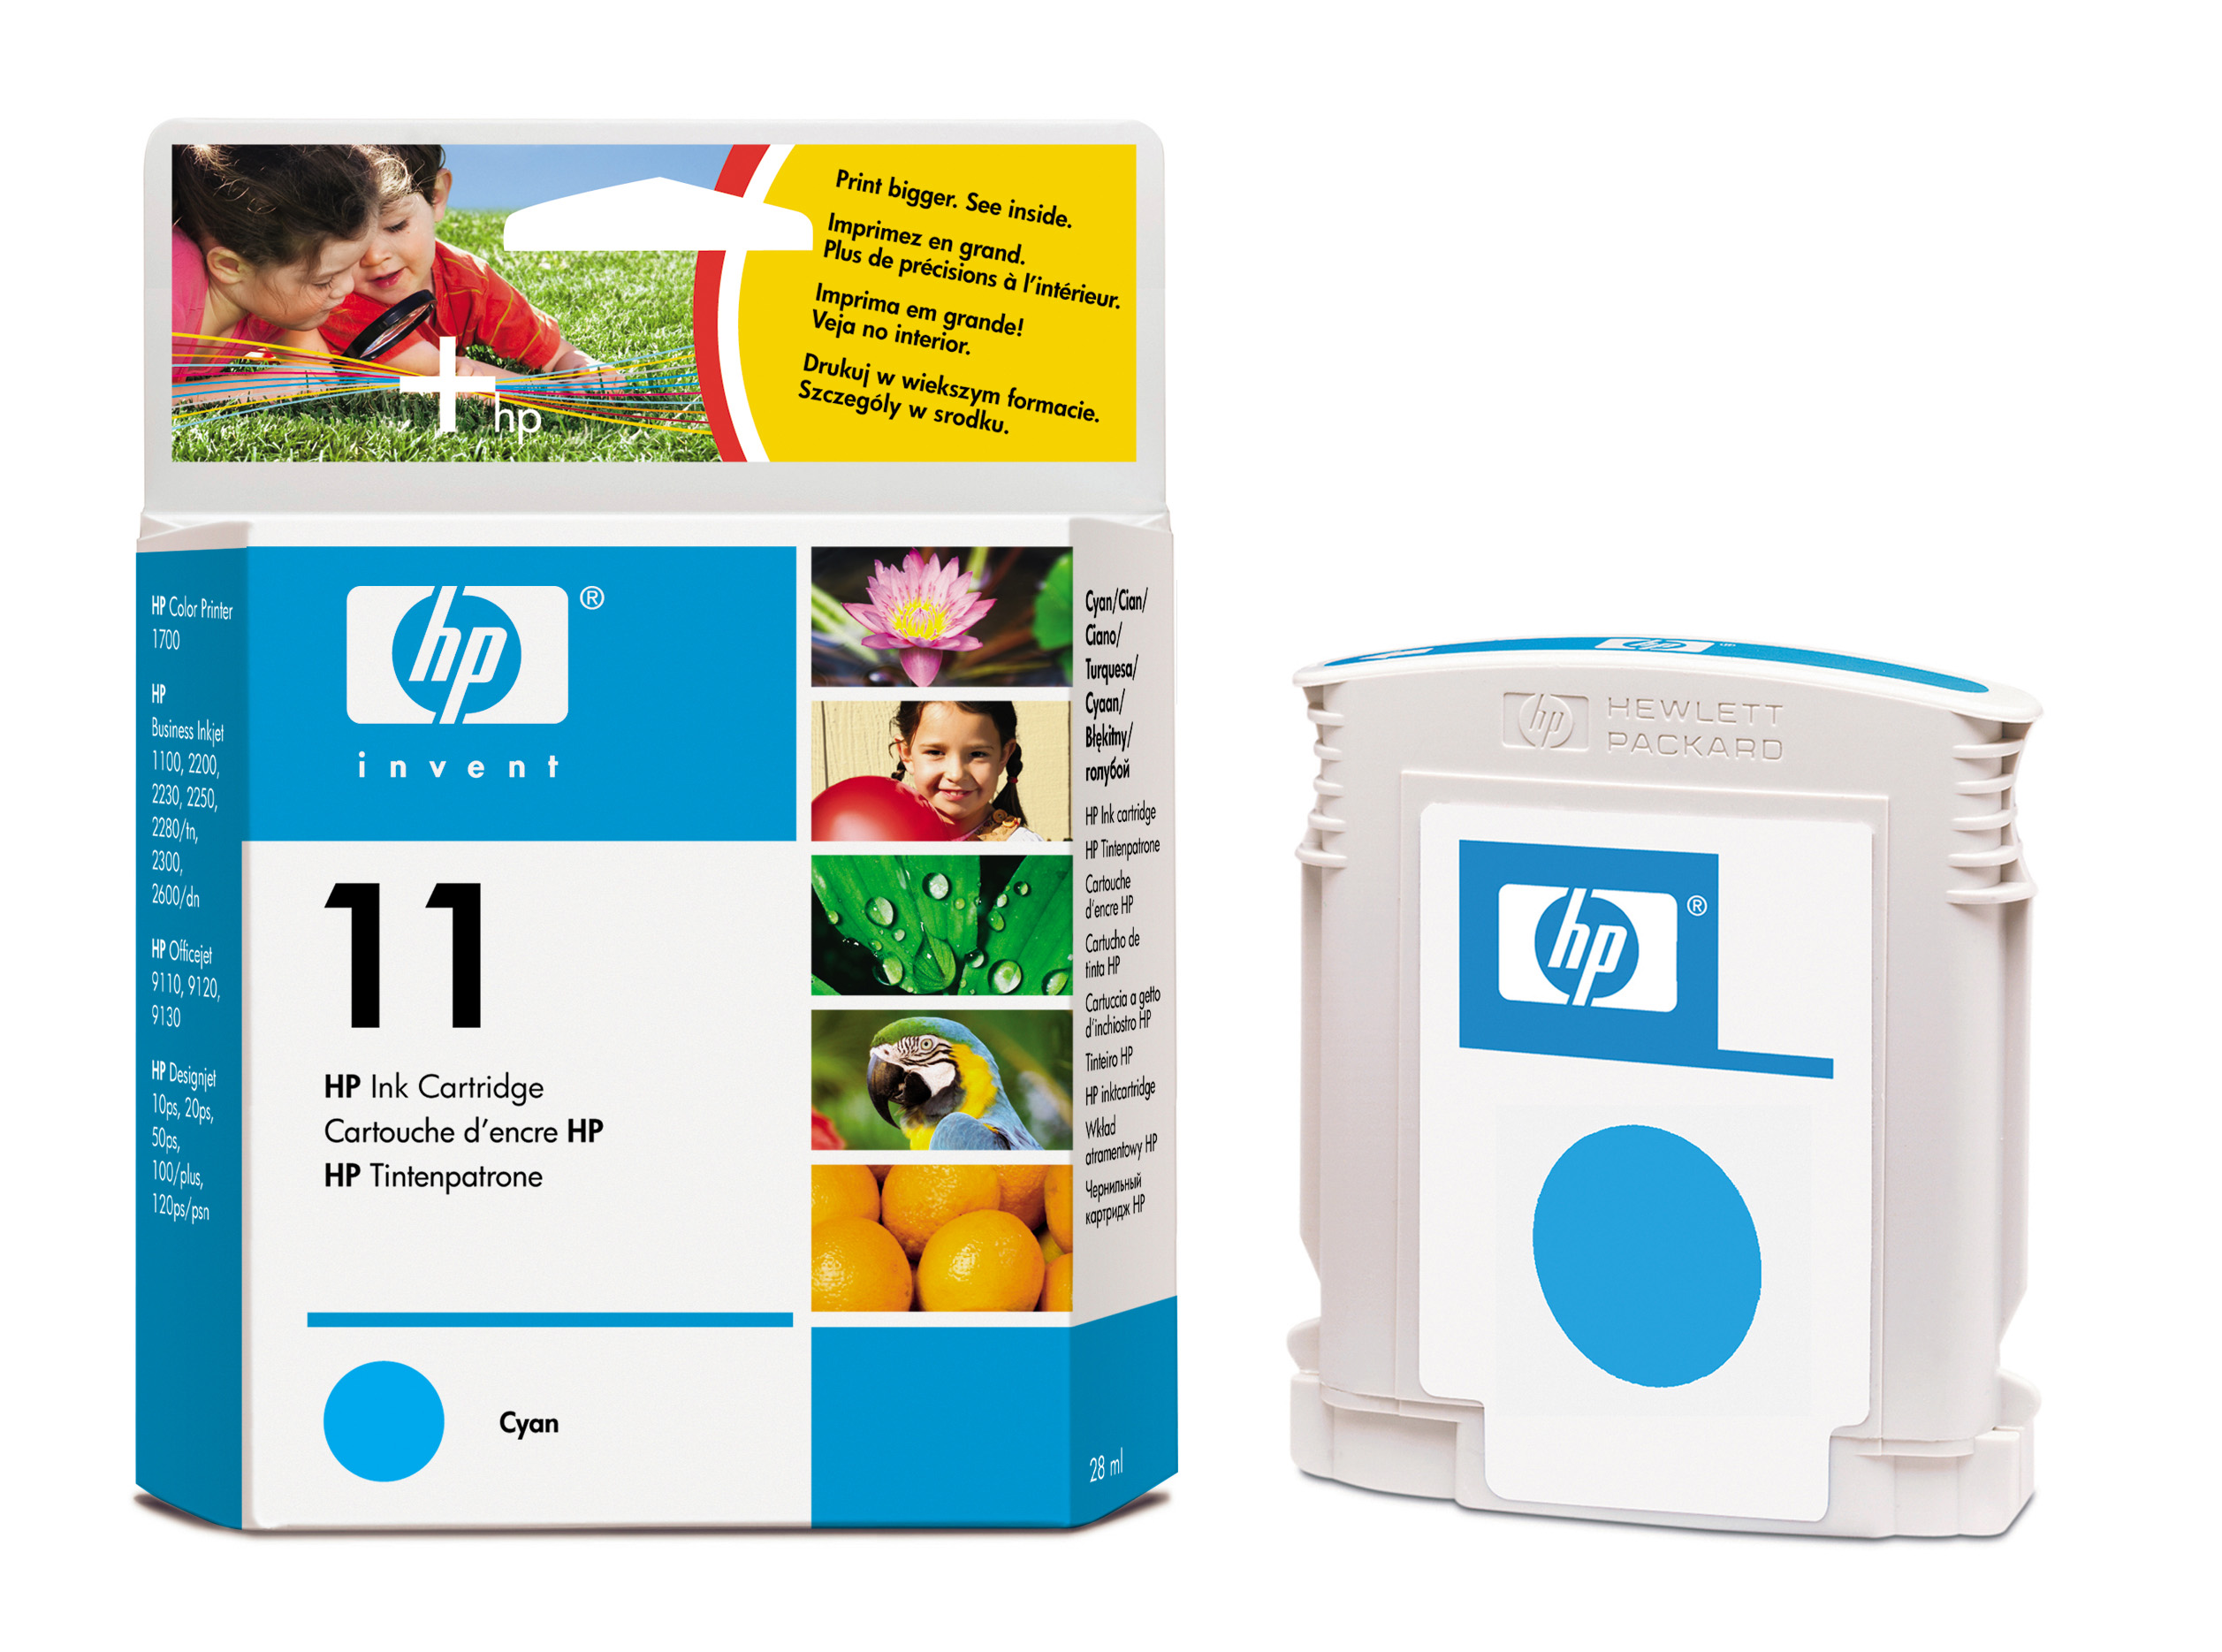 Картридж HP (C4836A) business inkjet 1000/1100d/1100dtn/1200/2200/2230/2250/2280/2300/2500/2600/2800, cp1700, DesignJet 10ps/20ps, DesignJet 70/100/110plus/111, OfficeJet 9110/9120/9130, OfficeJet Pro K850 series Cyan